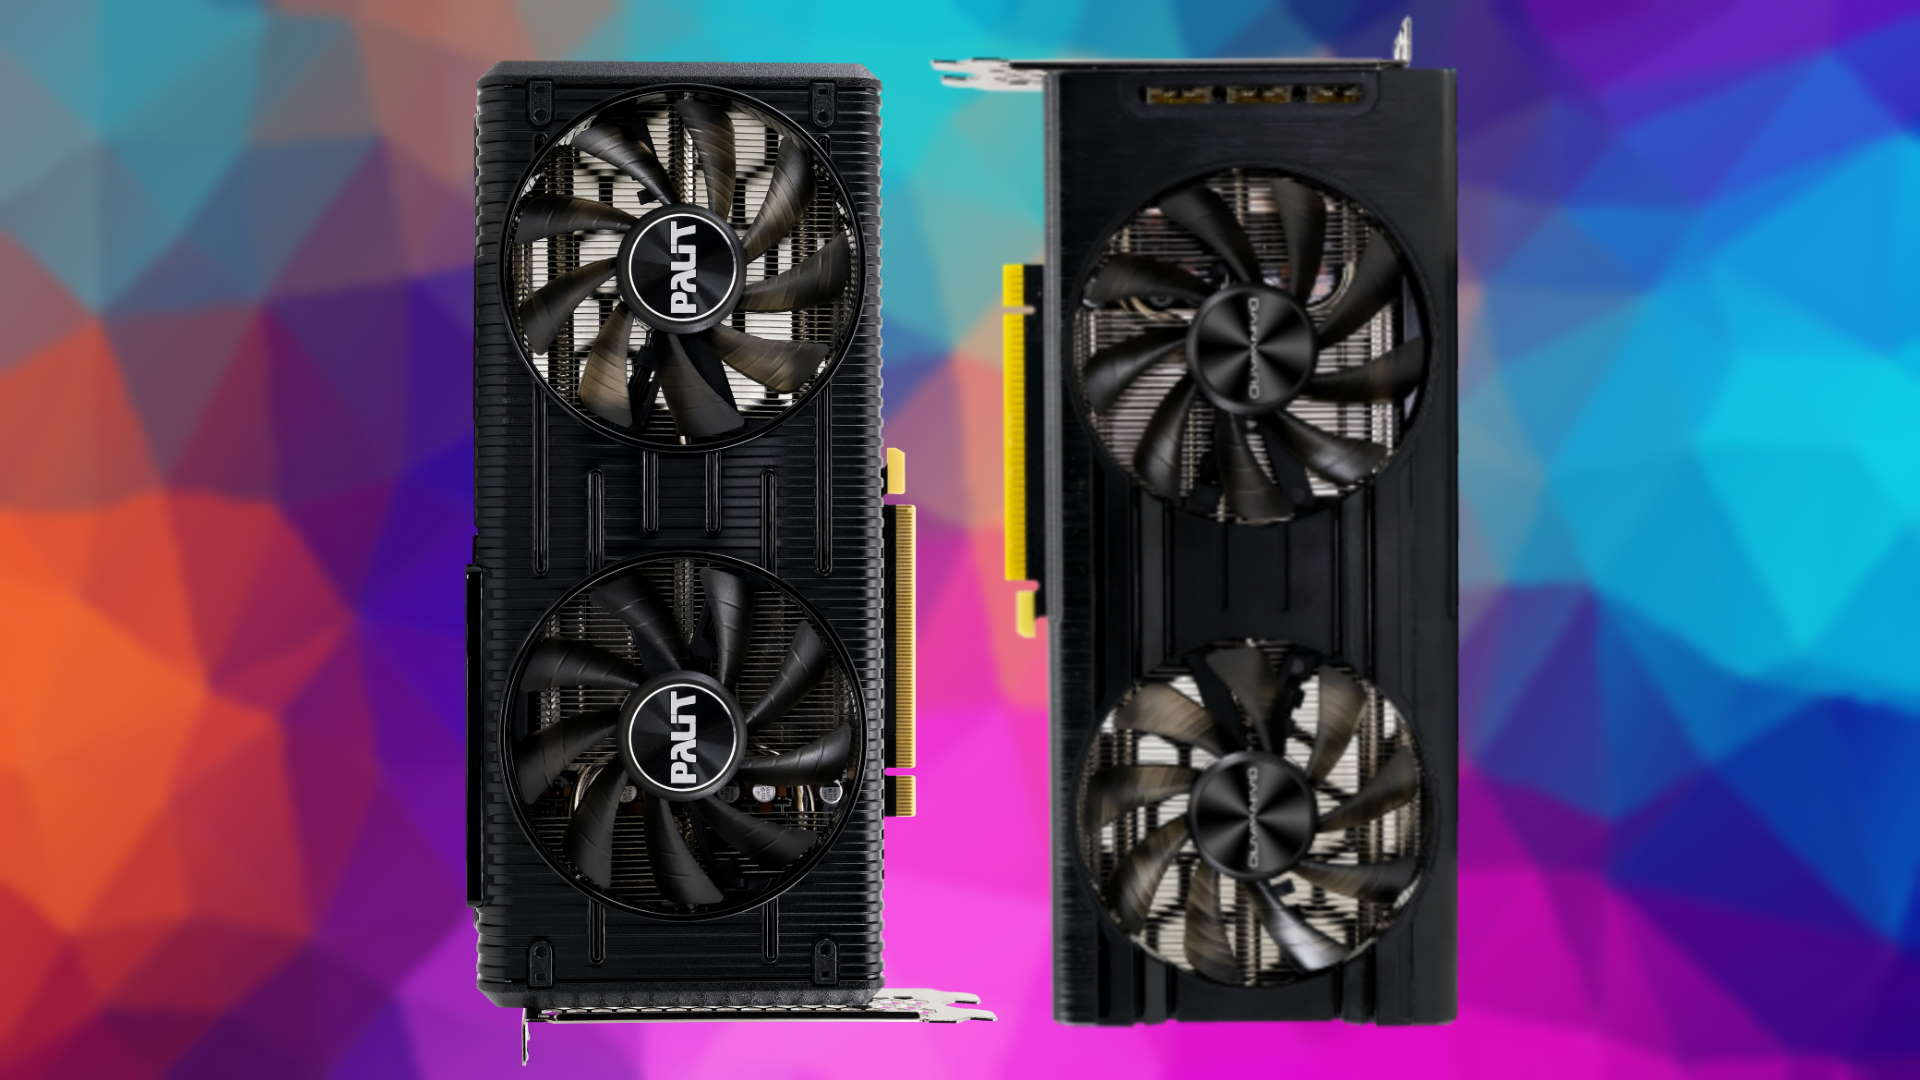 Nvidia RTX 3060 cards are listed with 8GB as well as 6GB configs